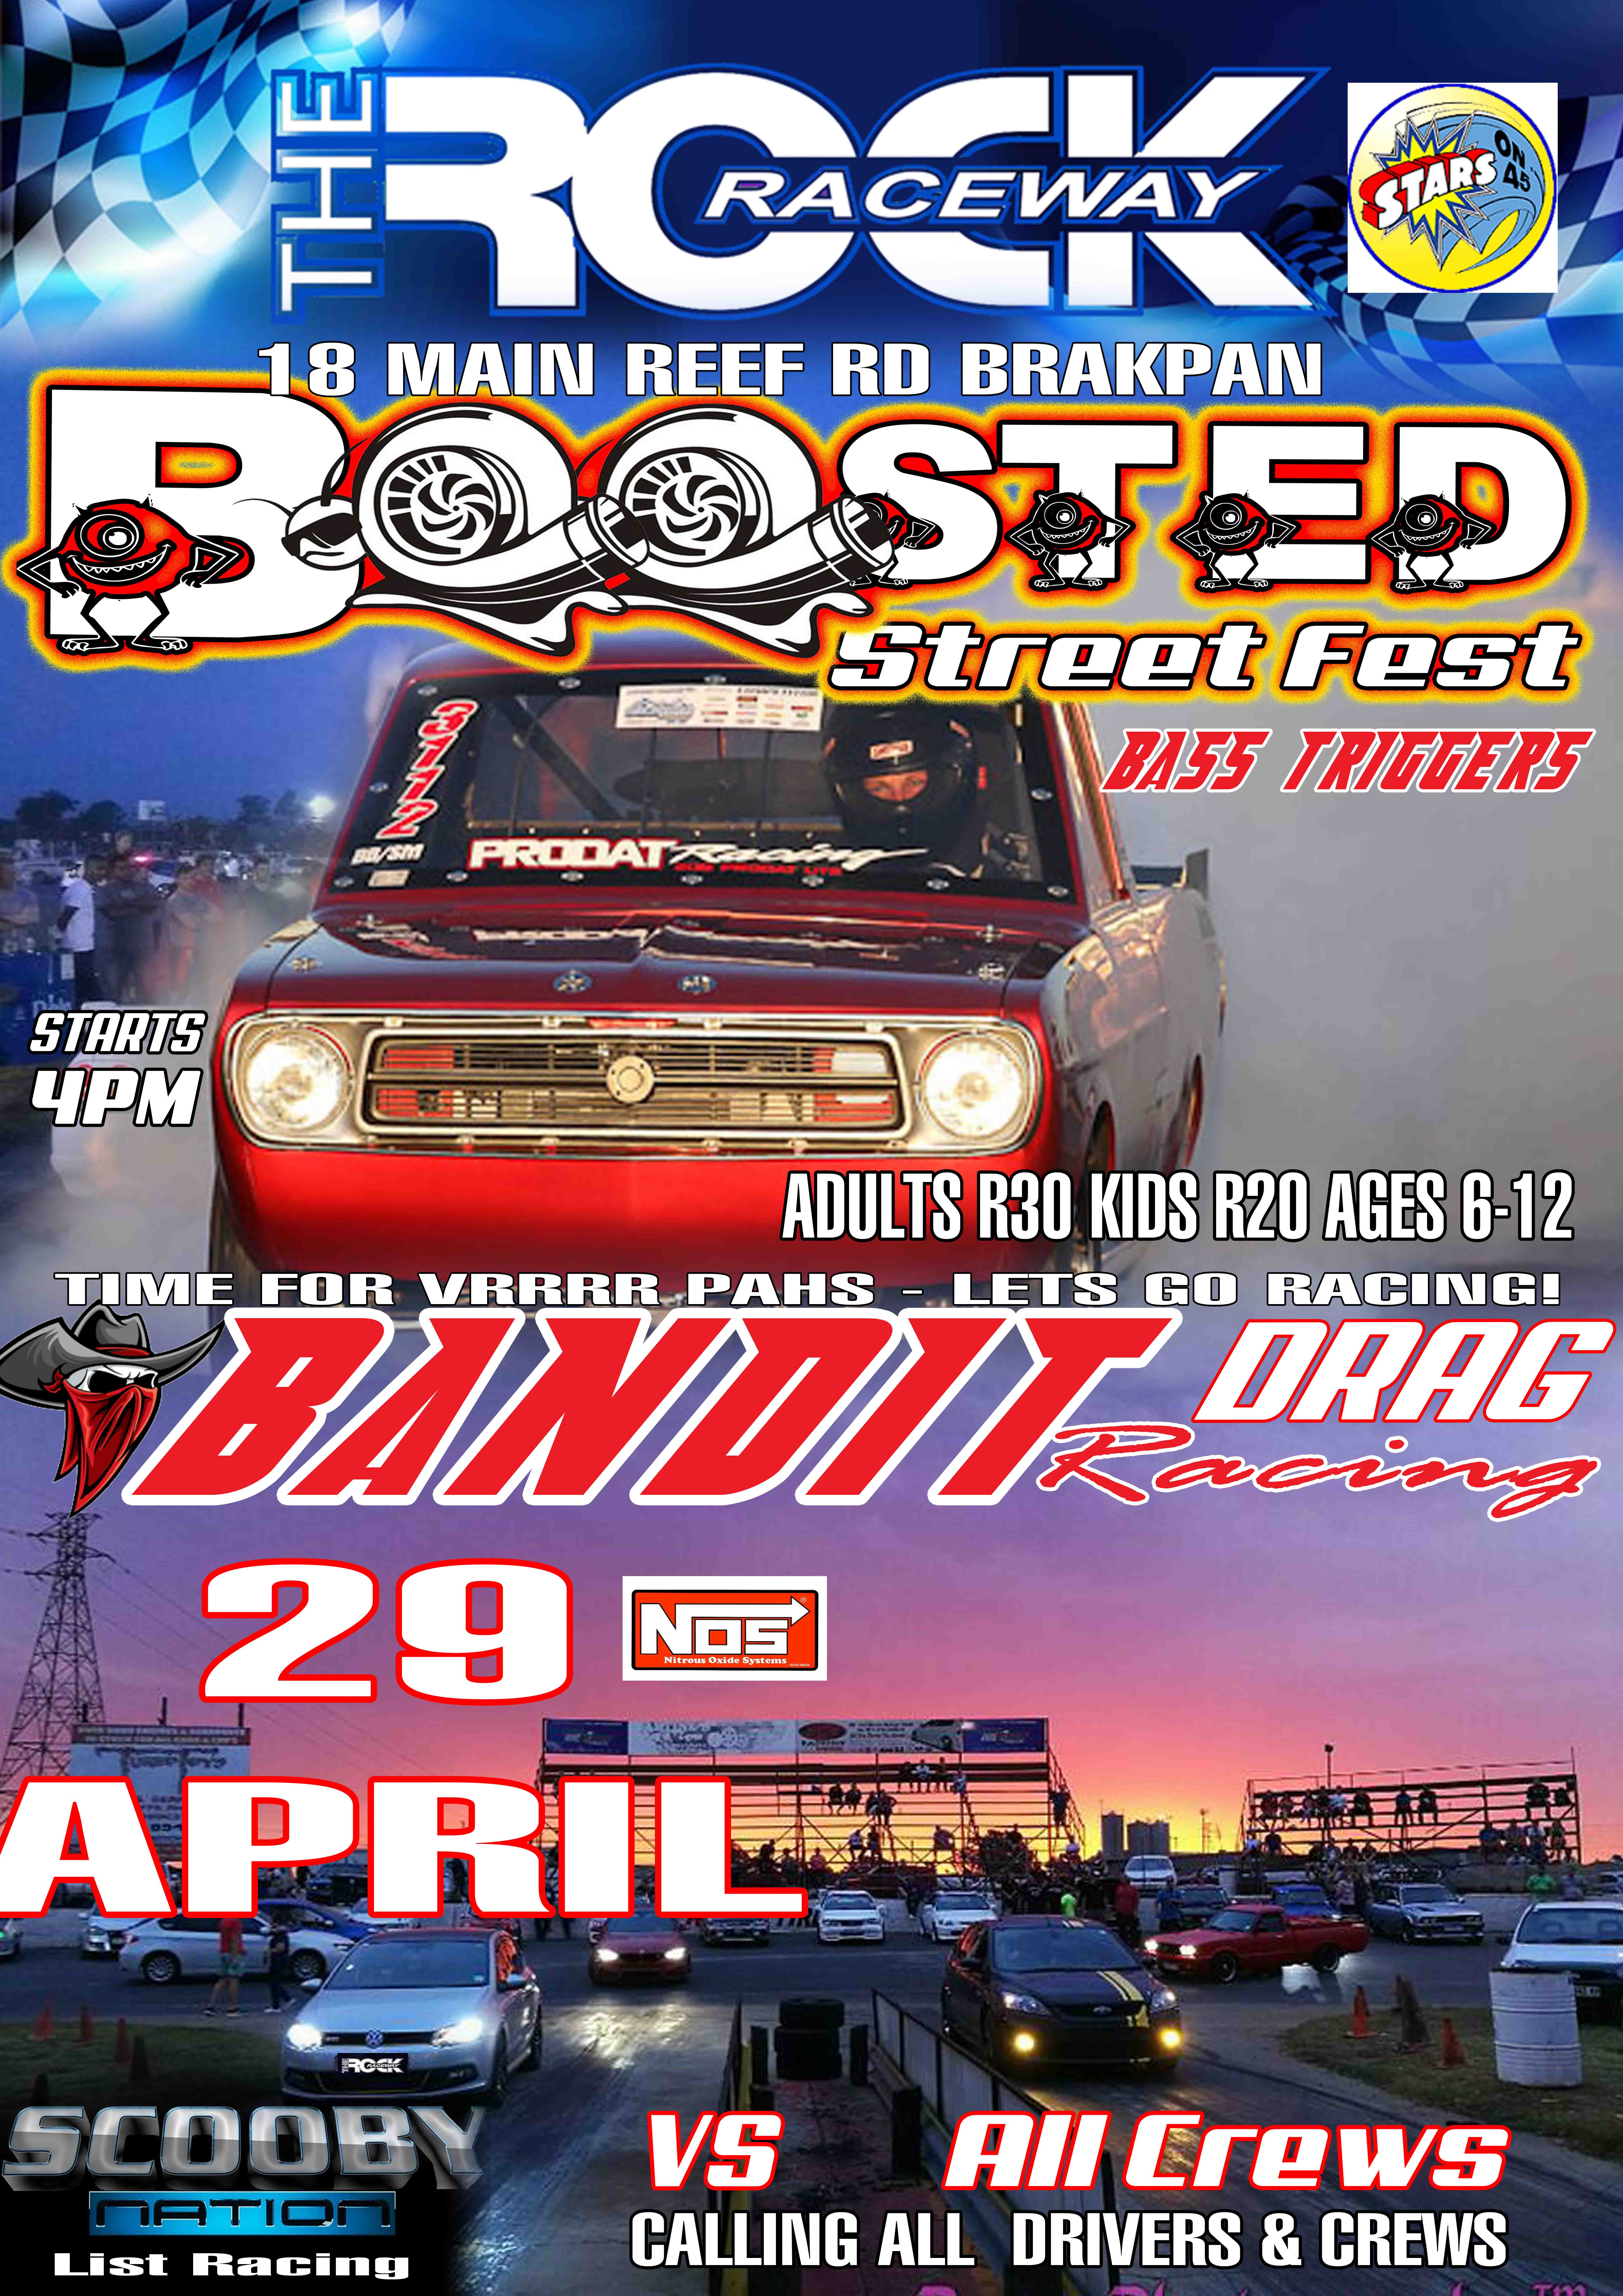 Heads Up Drag Racing Time It's time for boosted pedal fest bandit drag  racing @ The Rock Raceway again on the 29th April 2018. If you got what it  takes to ...